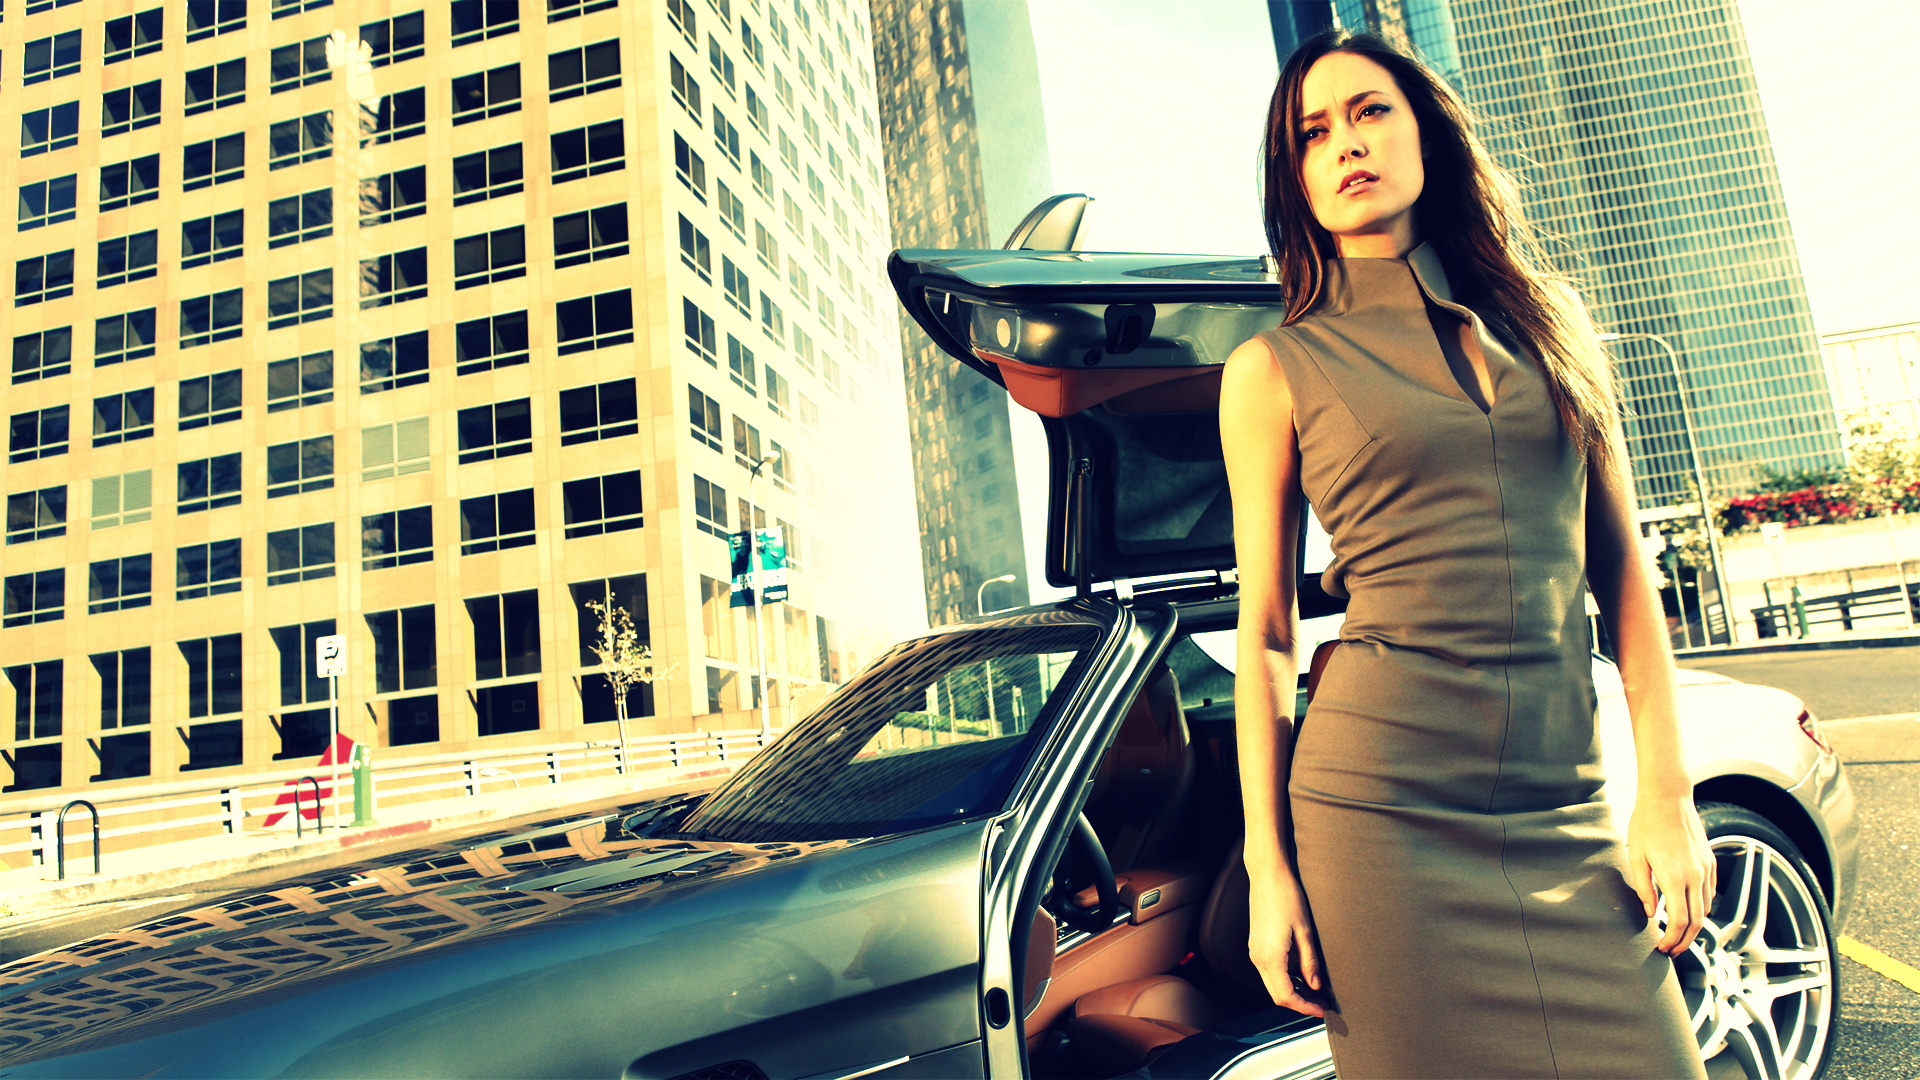 woman cars summer glau HD Wallpaper